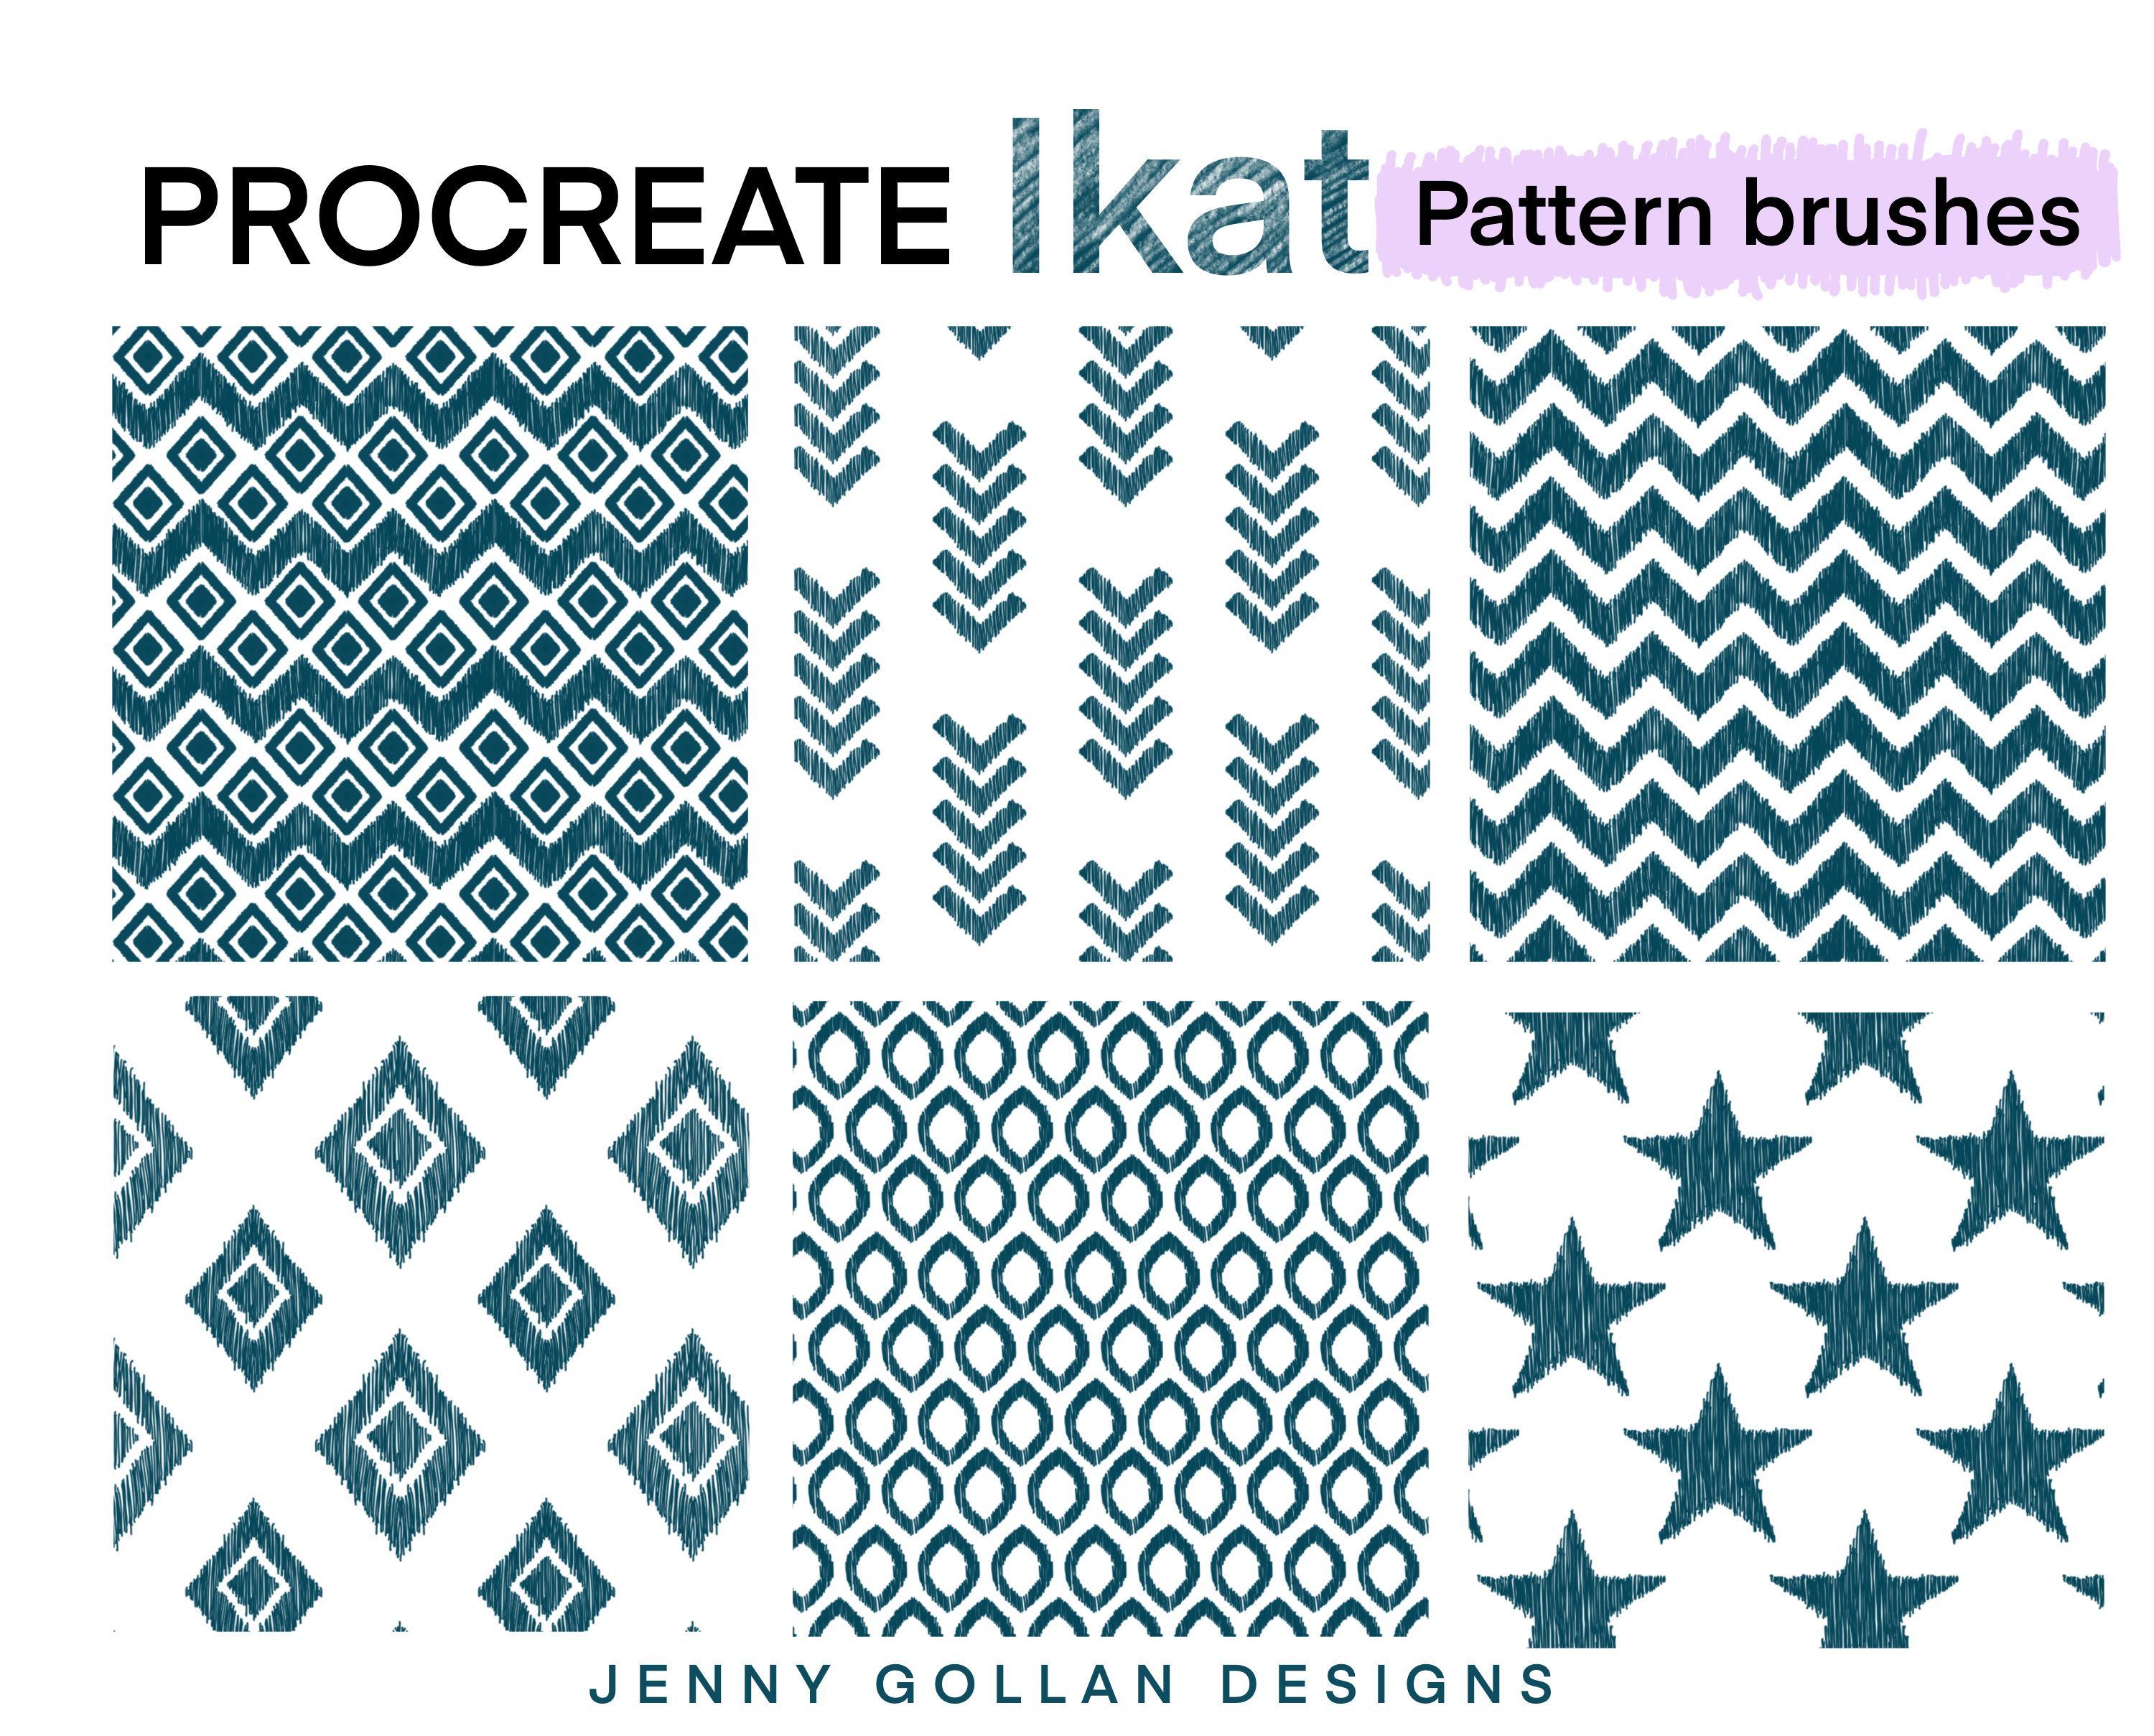 Procreate Brushes Repeating Ikat Patterns Seamless Pattern Brushes